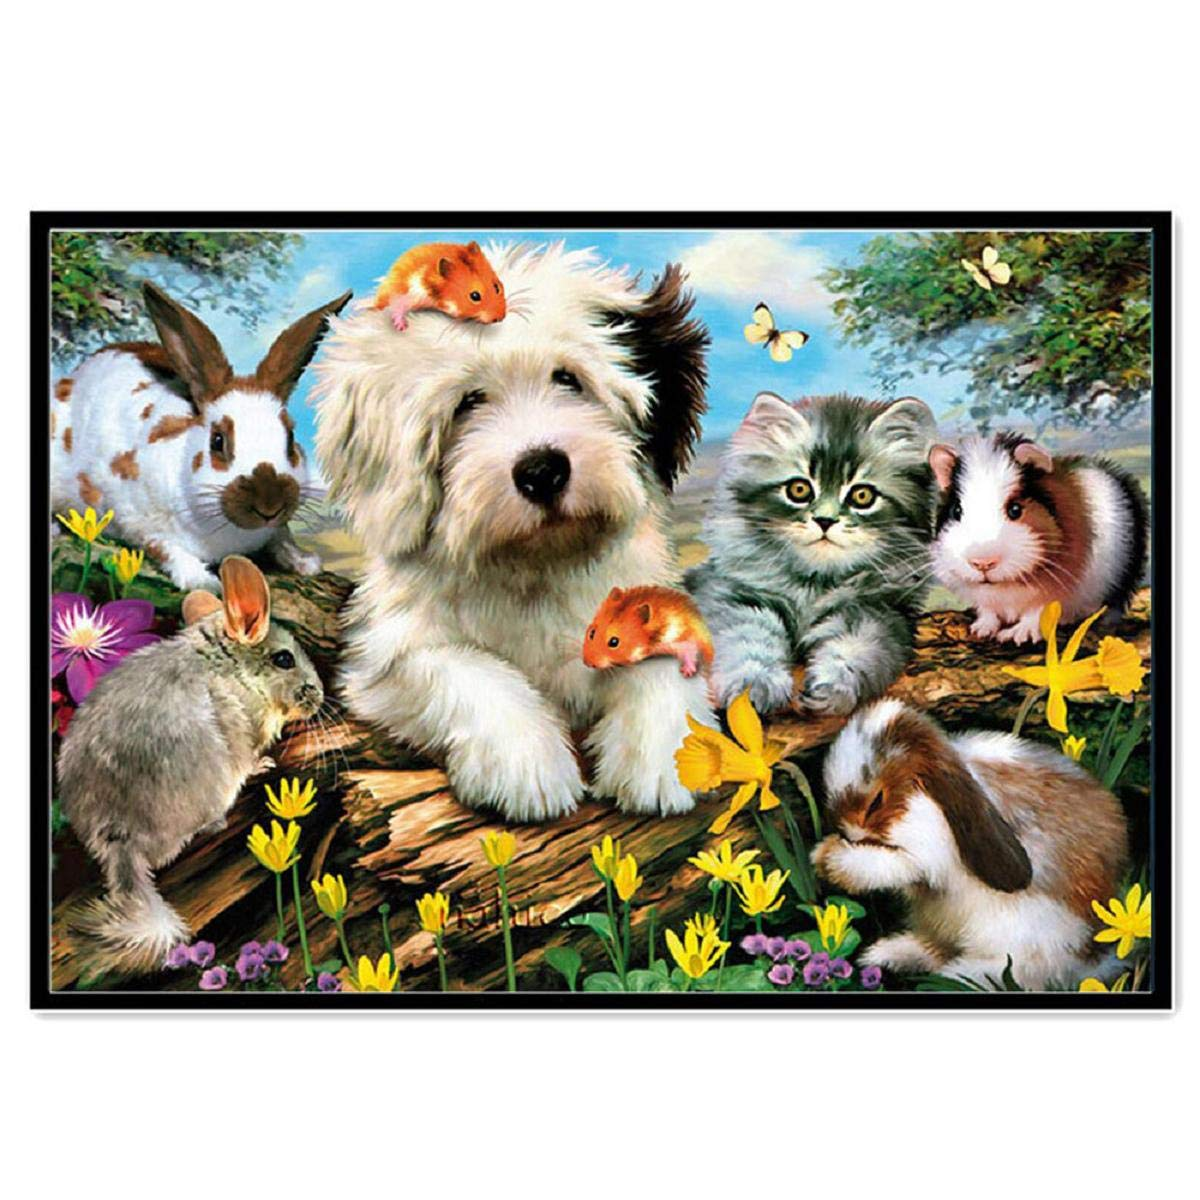 DIY 5D Diamond Painting Dartphew by Number Kits, Crystal Rhinestone Embroidery Pictures Arts Craft for Home Wall Decor - Lovely Dogs Cats Horses Animals - Reduces Eye Strain by Dartphew DIY 5D Diamond Painting (Image #1)